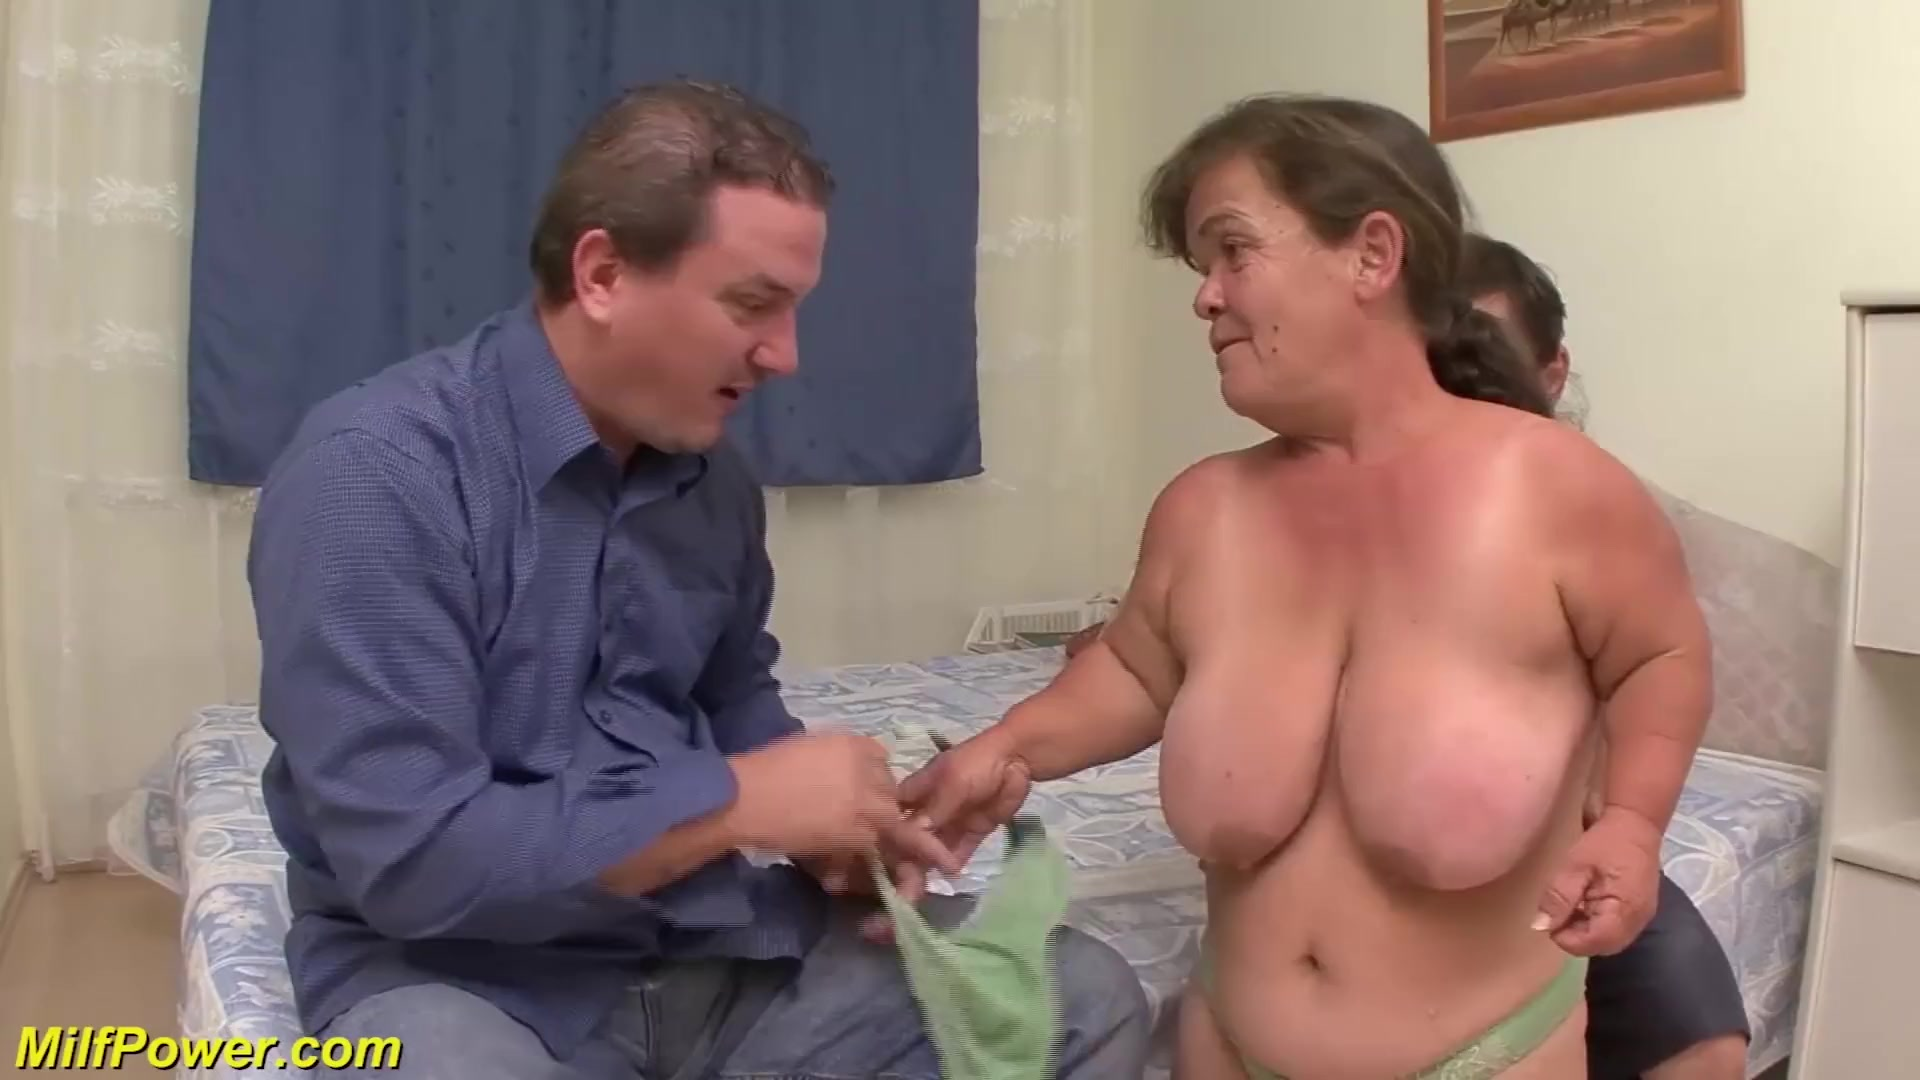 Tiny milf and her first sex in threesome